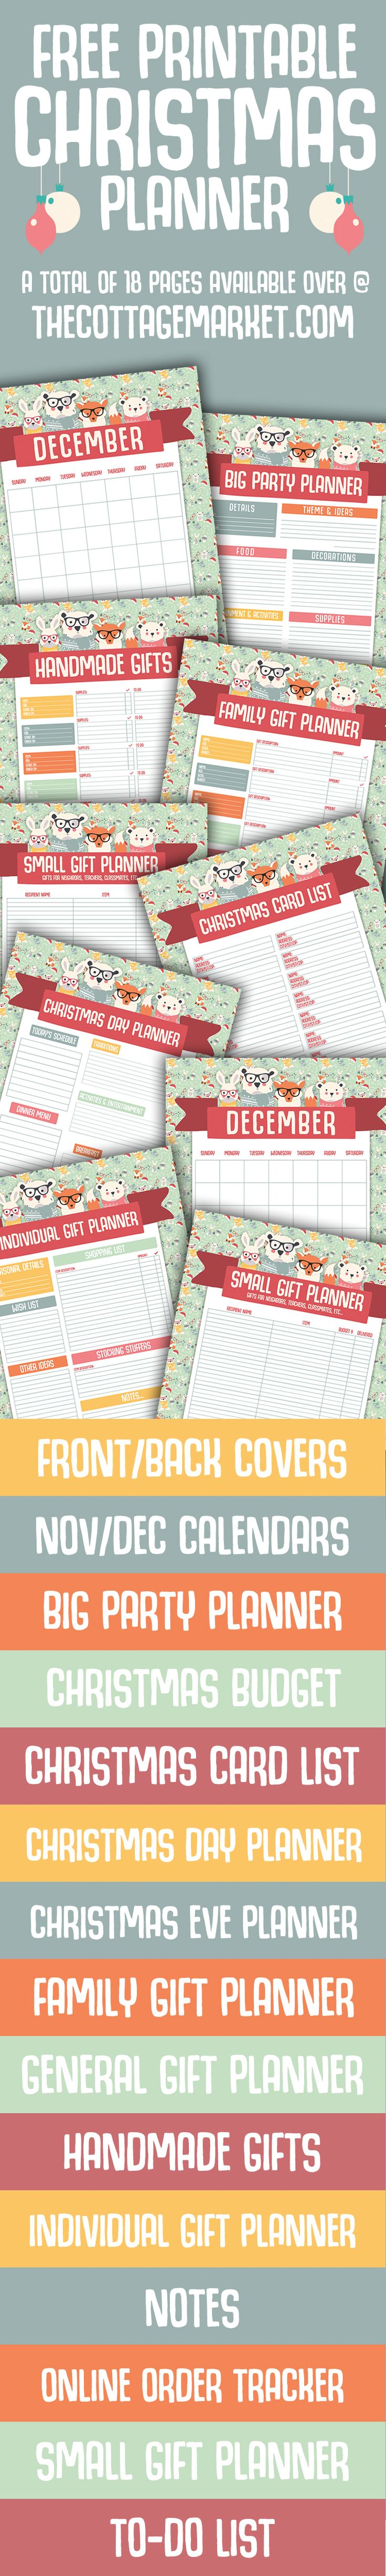 Free Holiday Planner! 18 Pages of Organization to help you through the busy time!